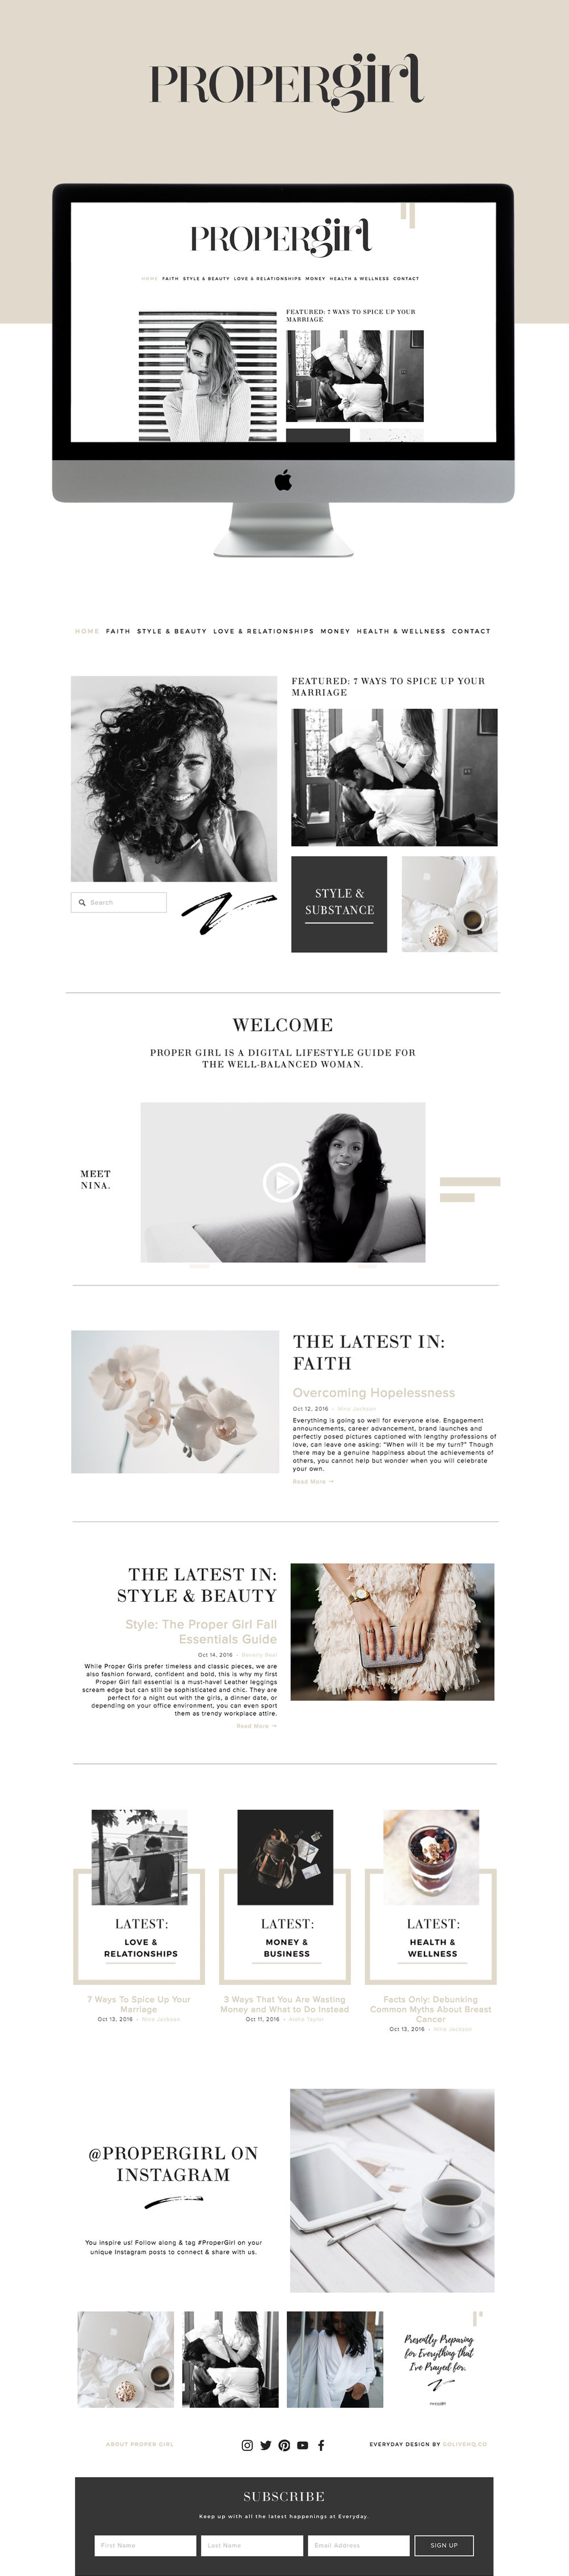 High end, editorial, magazine feel squarespace website design | designed by: golivehq.co